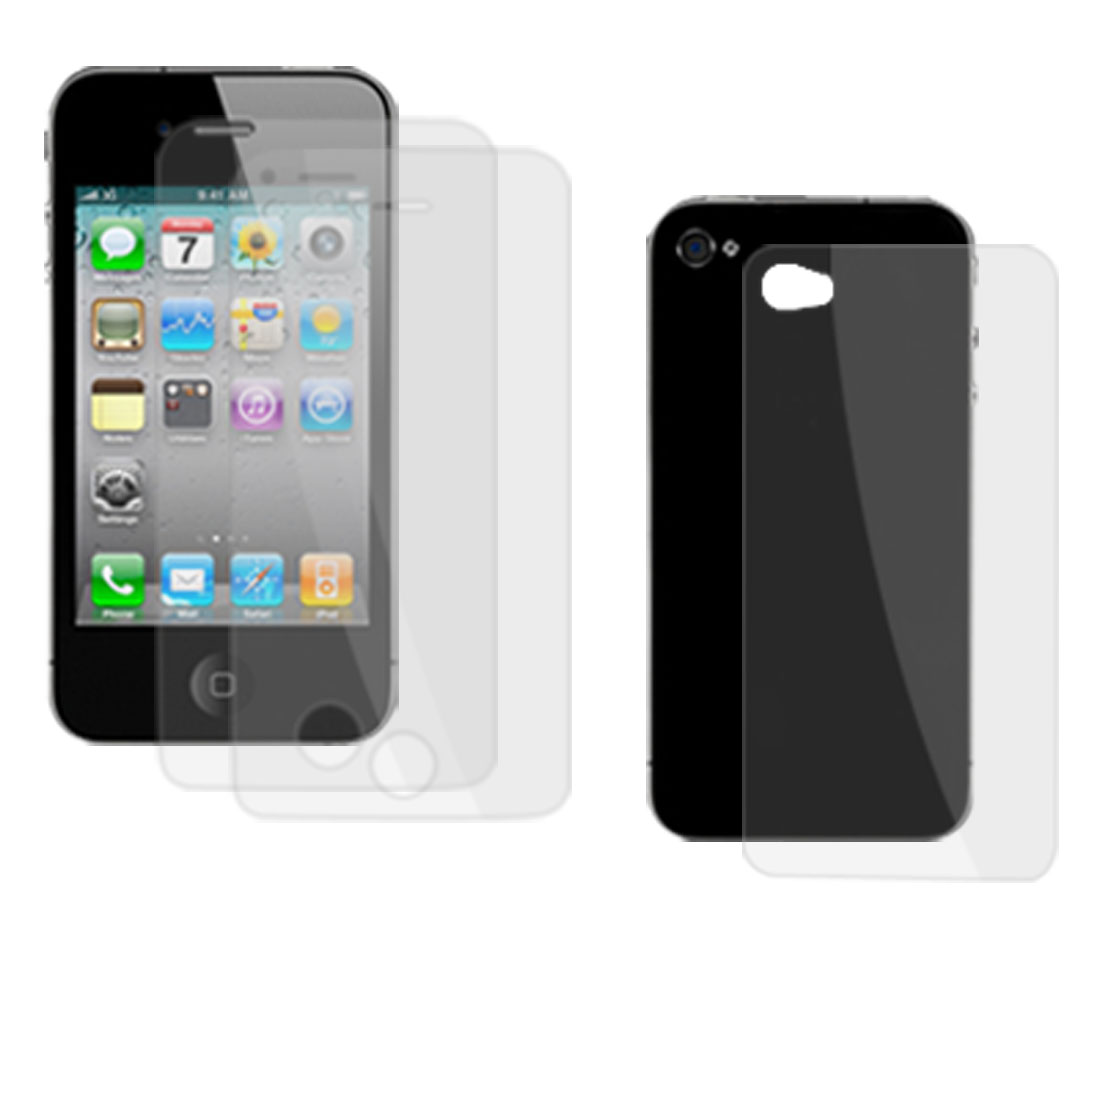 3 Pcs Anti Glare Clear LCD Screen Protectors Cover for iPhone 4 4G